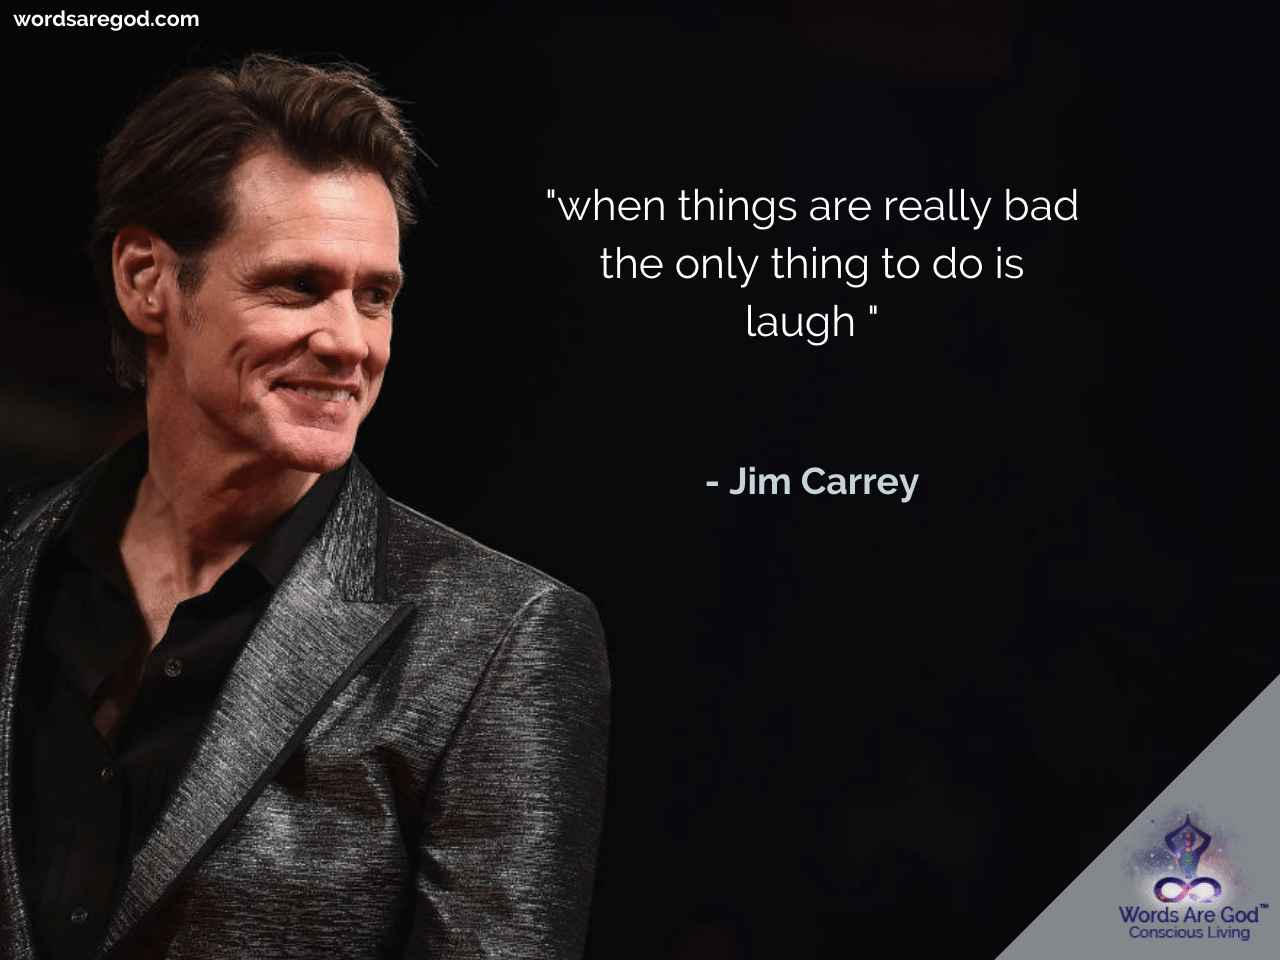 Jim Carrey Inspirational Quotes